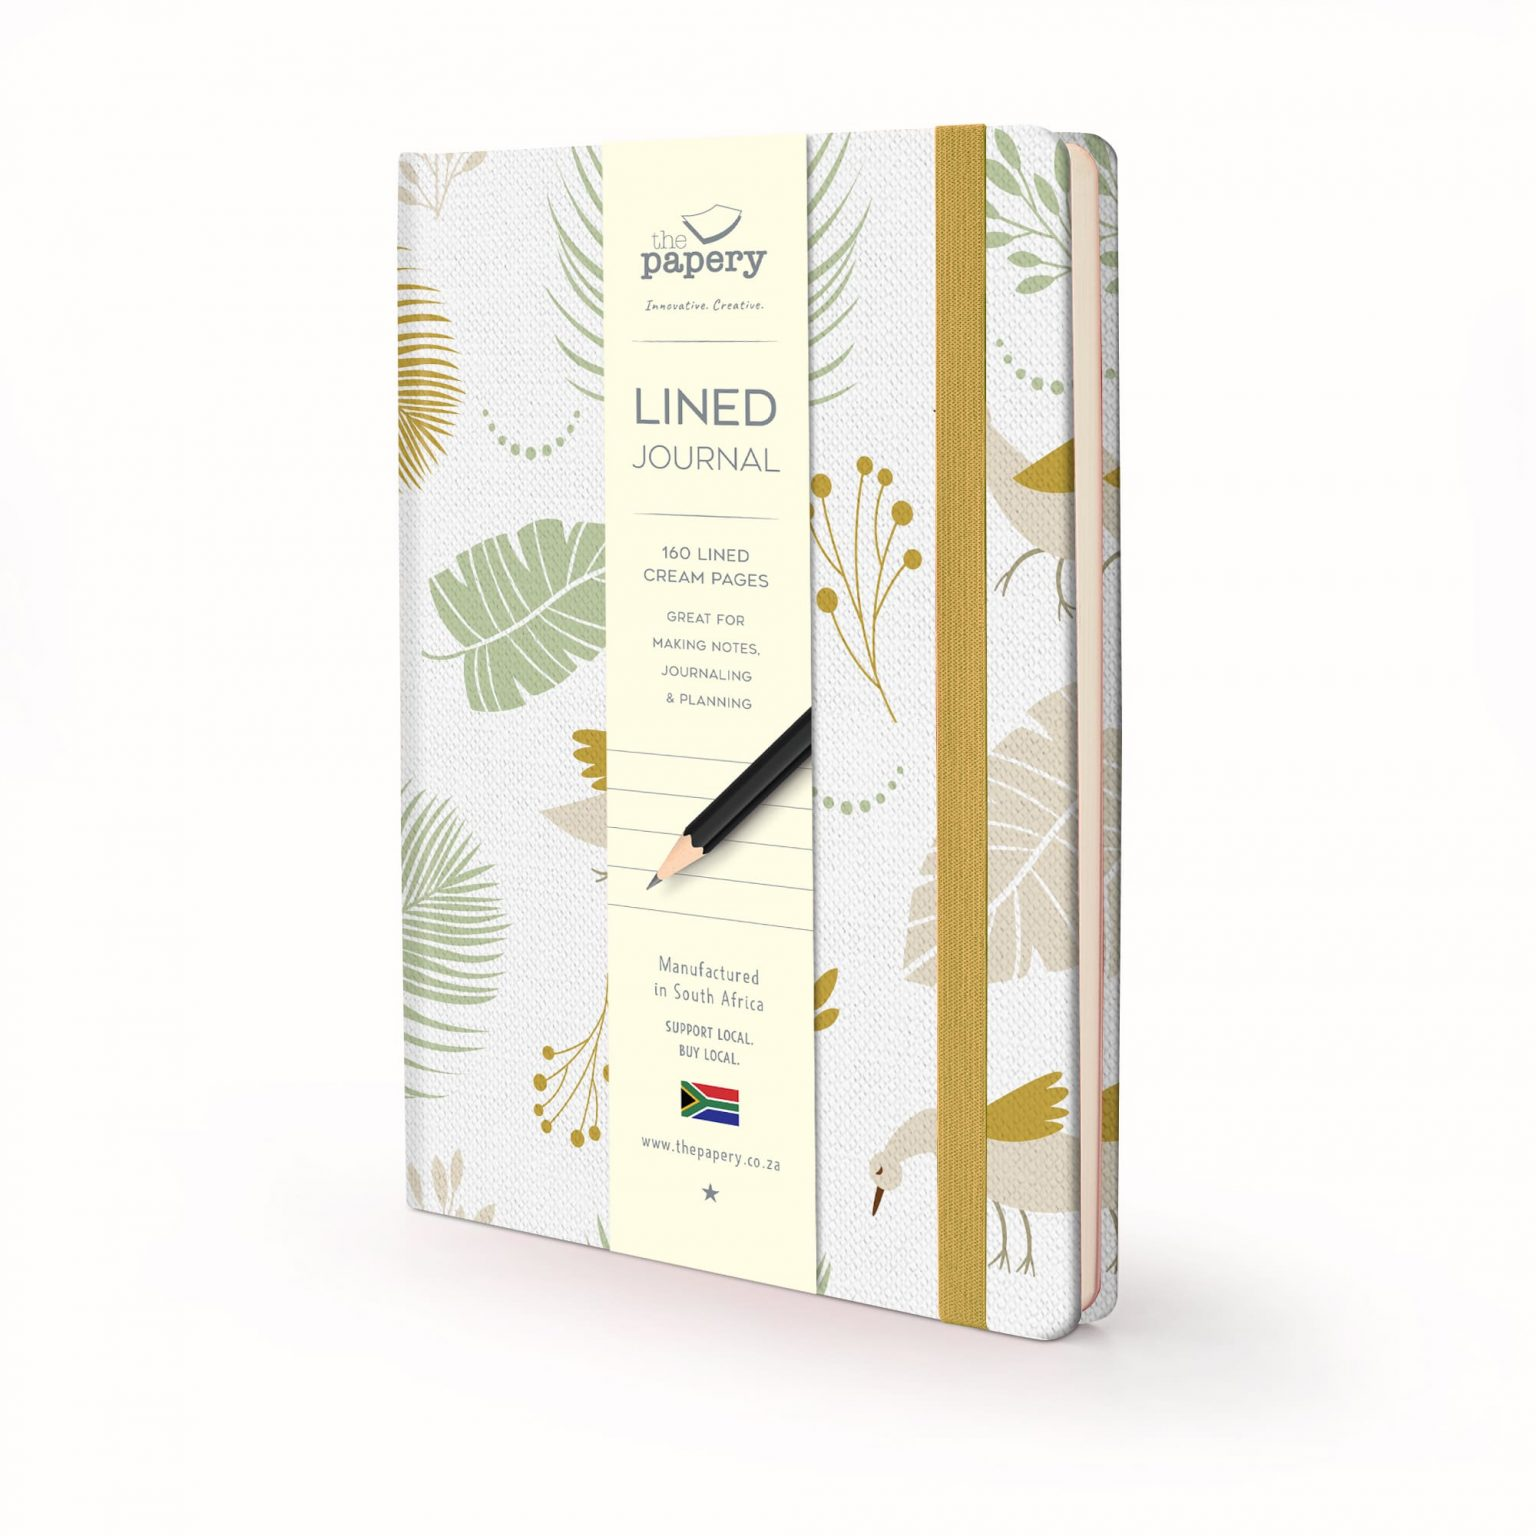 Image shows a Nature Bird Hardcover journal